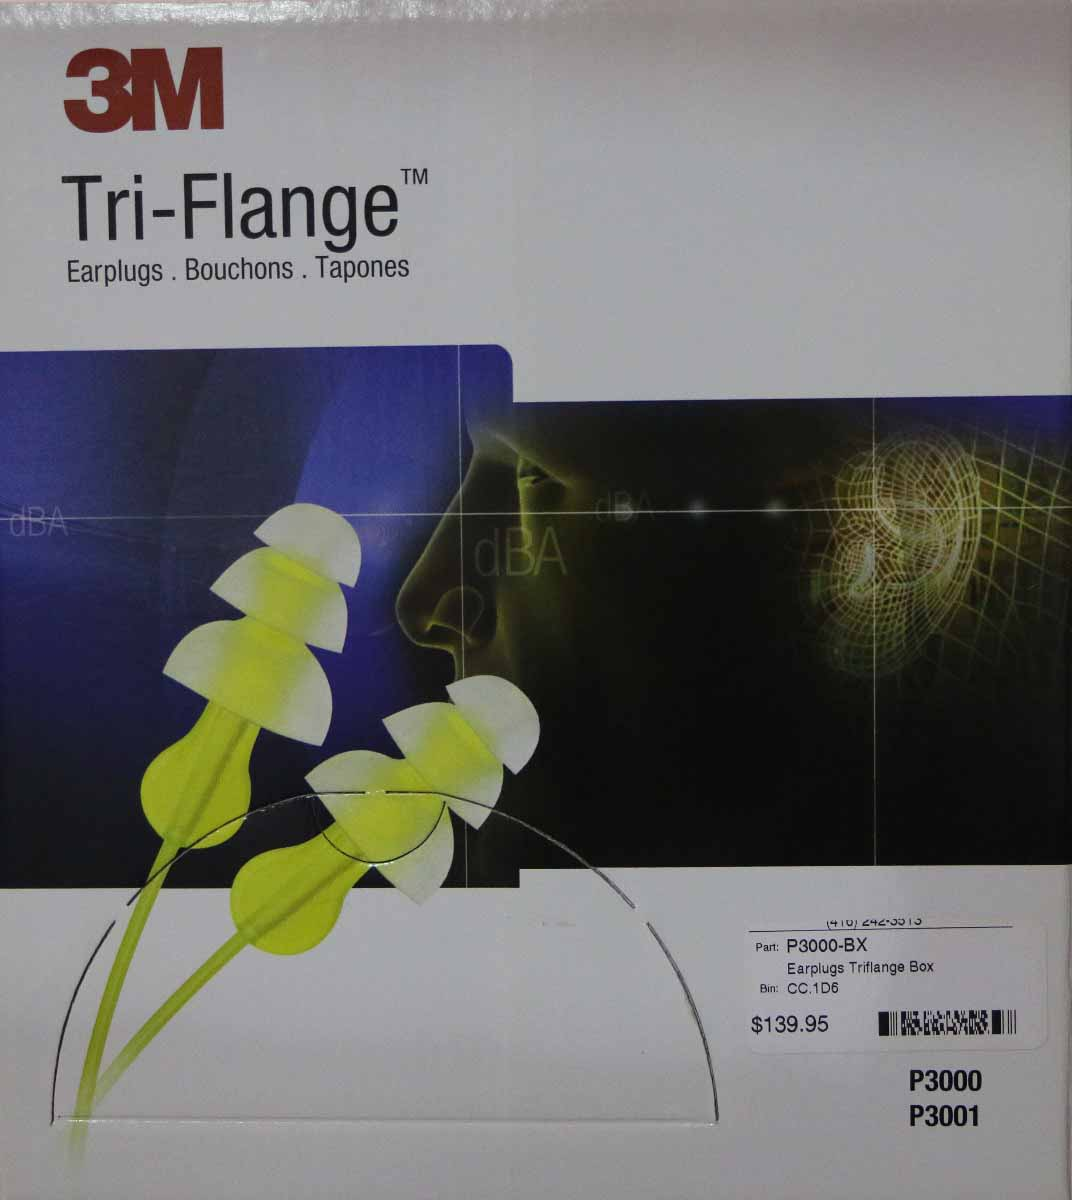 3M Tri-Flange Corded EAR plugs